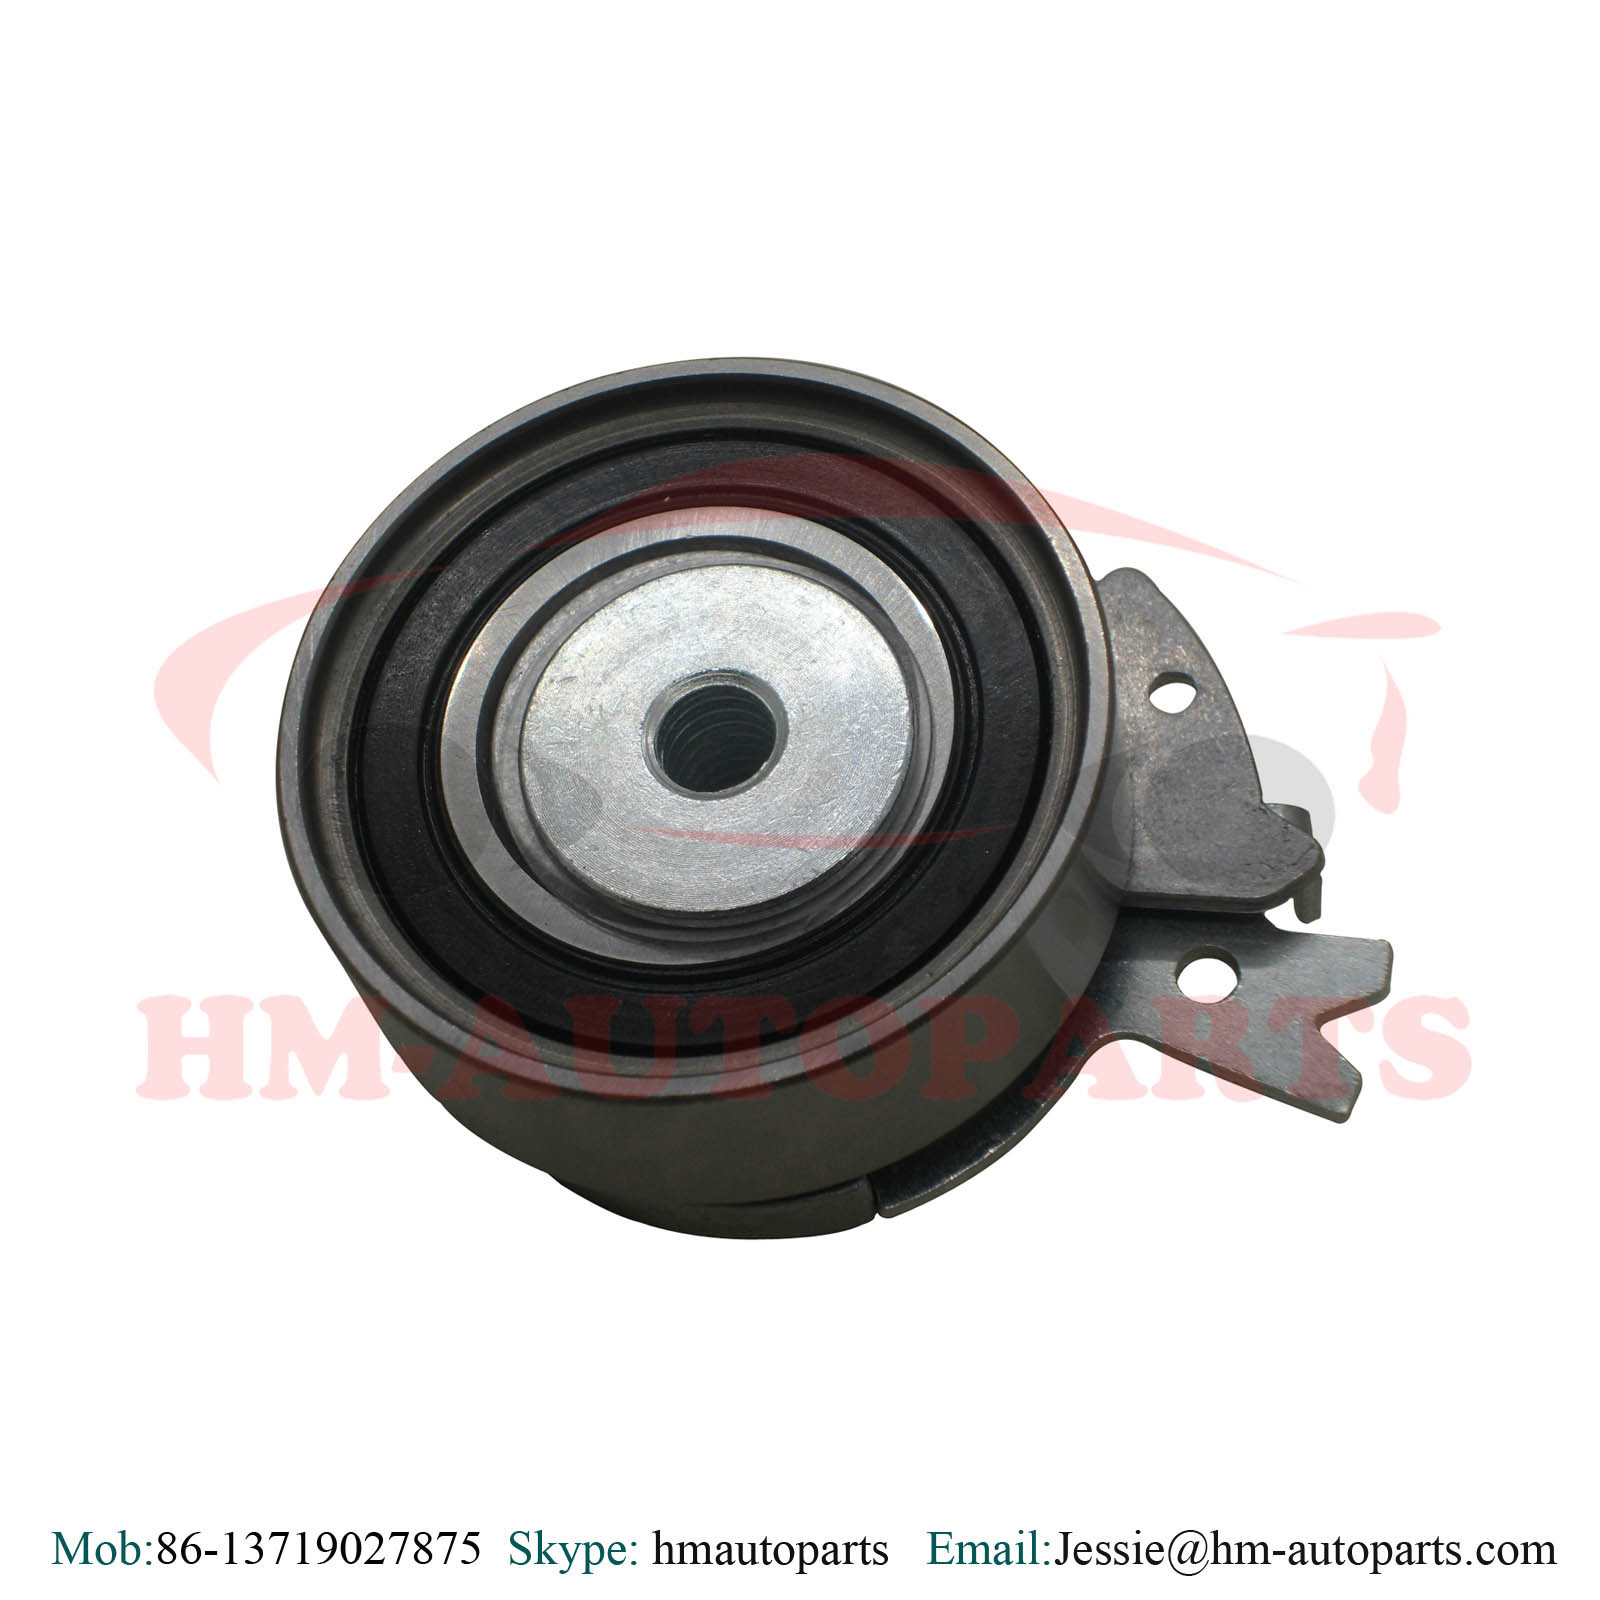 Tensioner Pulley Timing Belt 90499401 For Daewoo Opel Vauxhall And General Motors